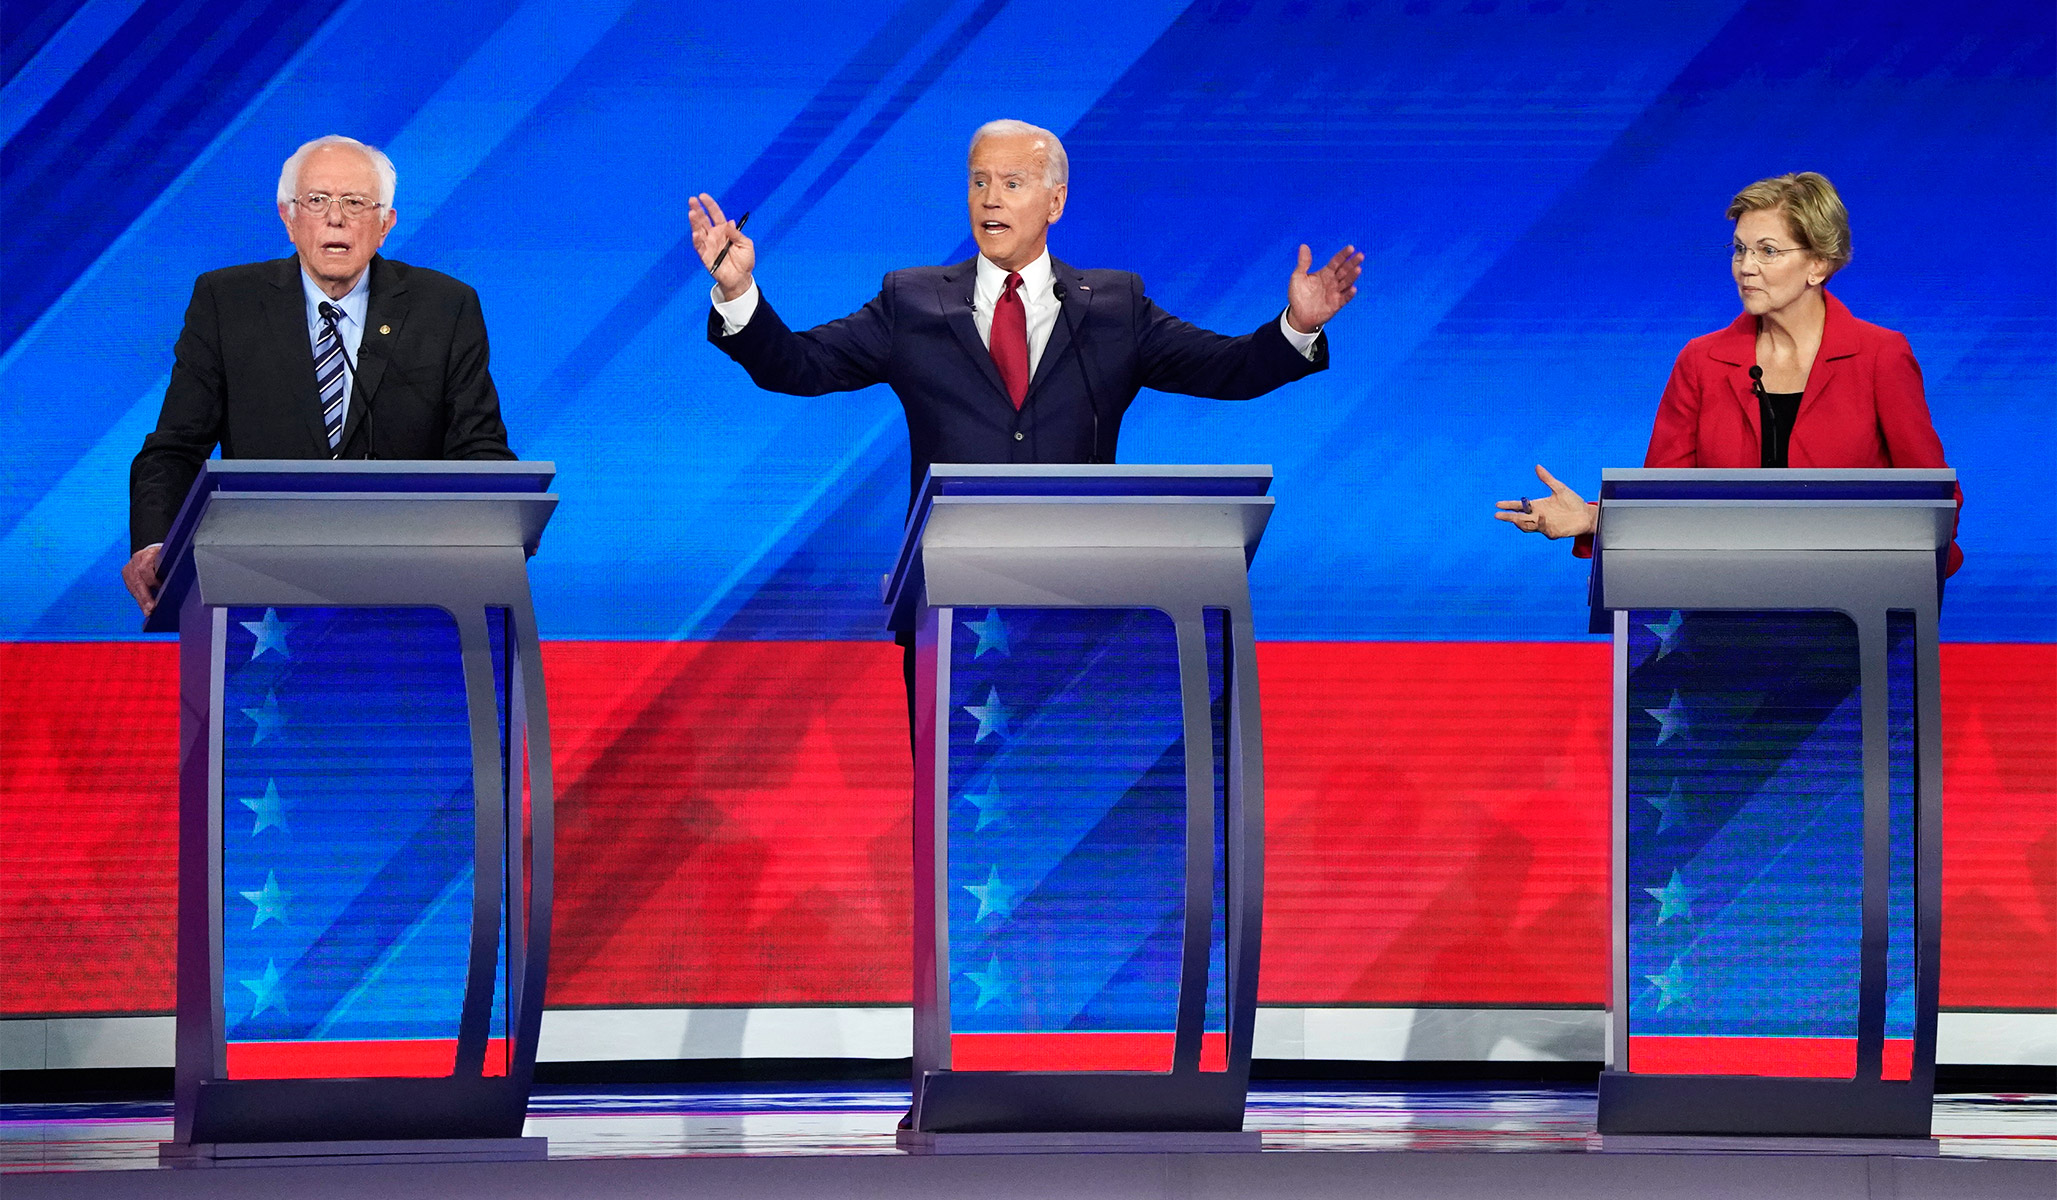 Episode 164: Dissecting the Debate